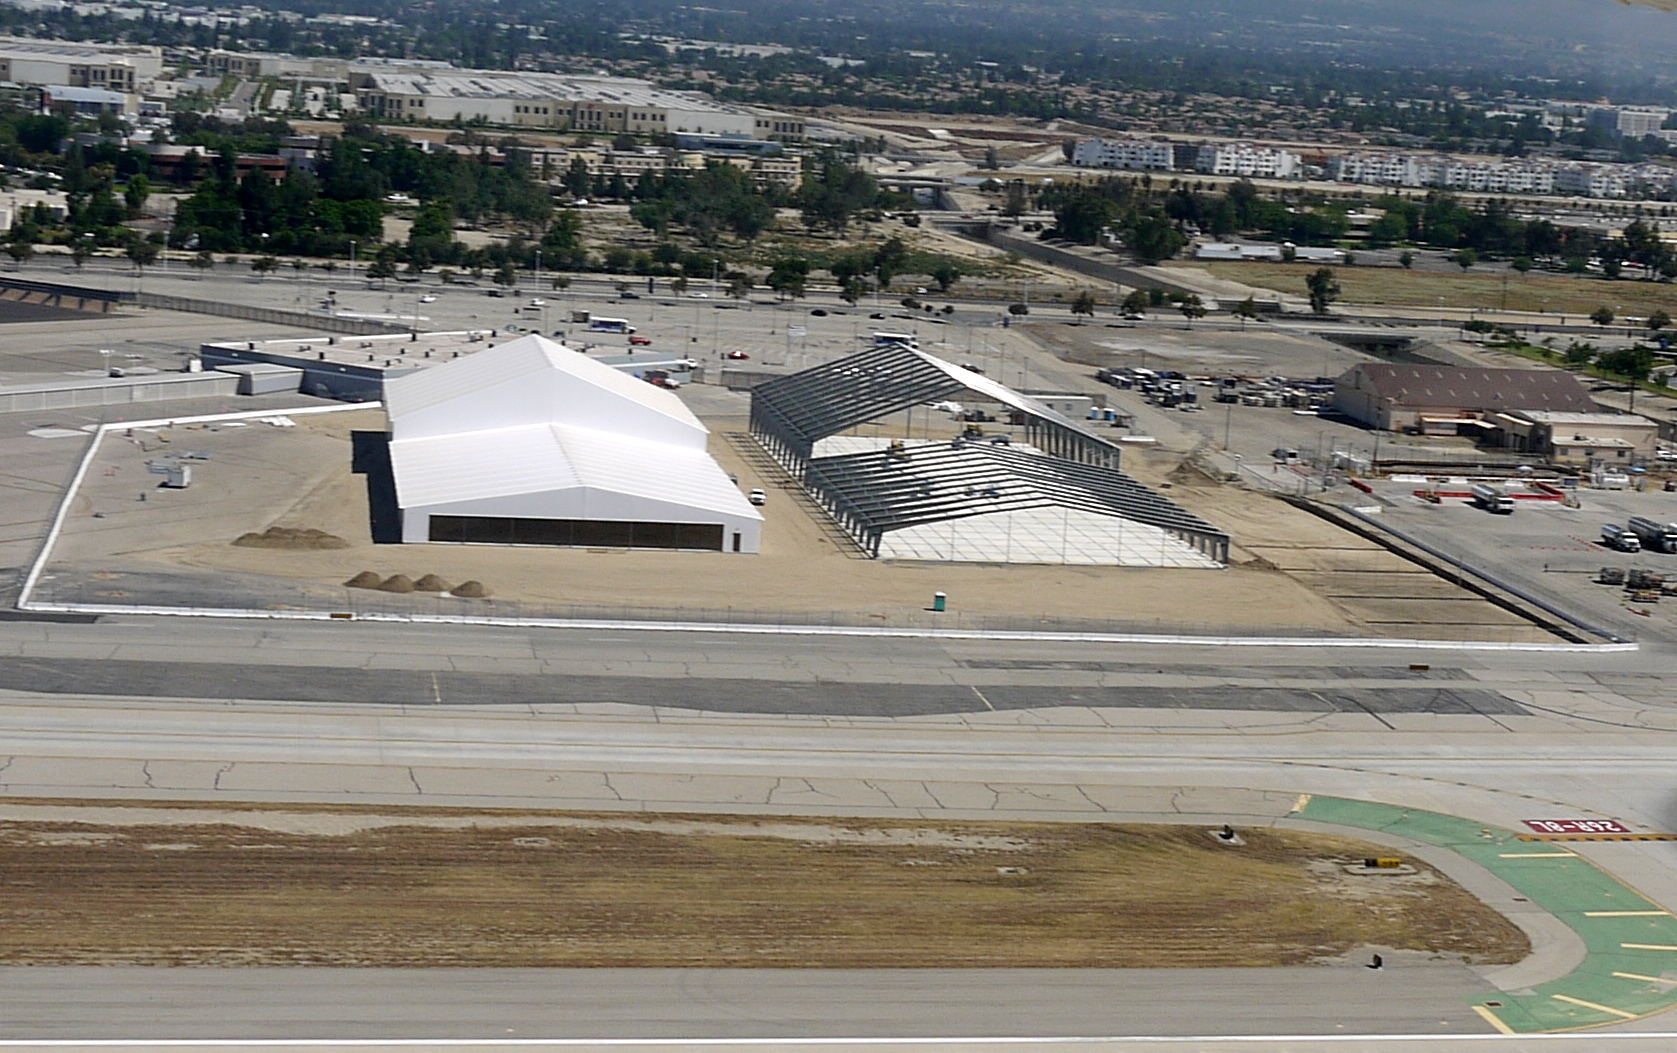 Ontario International Airport, Southwest Airlines & MTA Cargo Structures